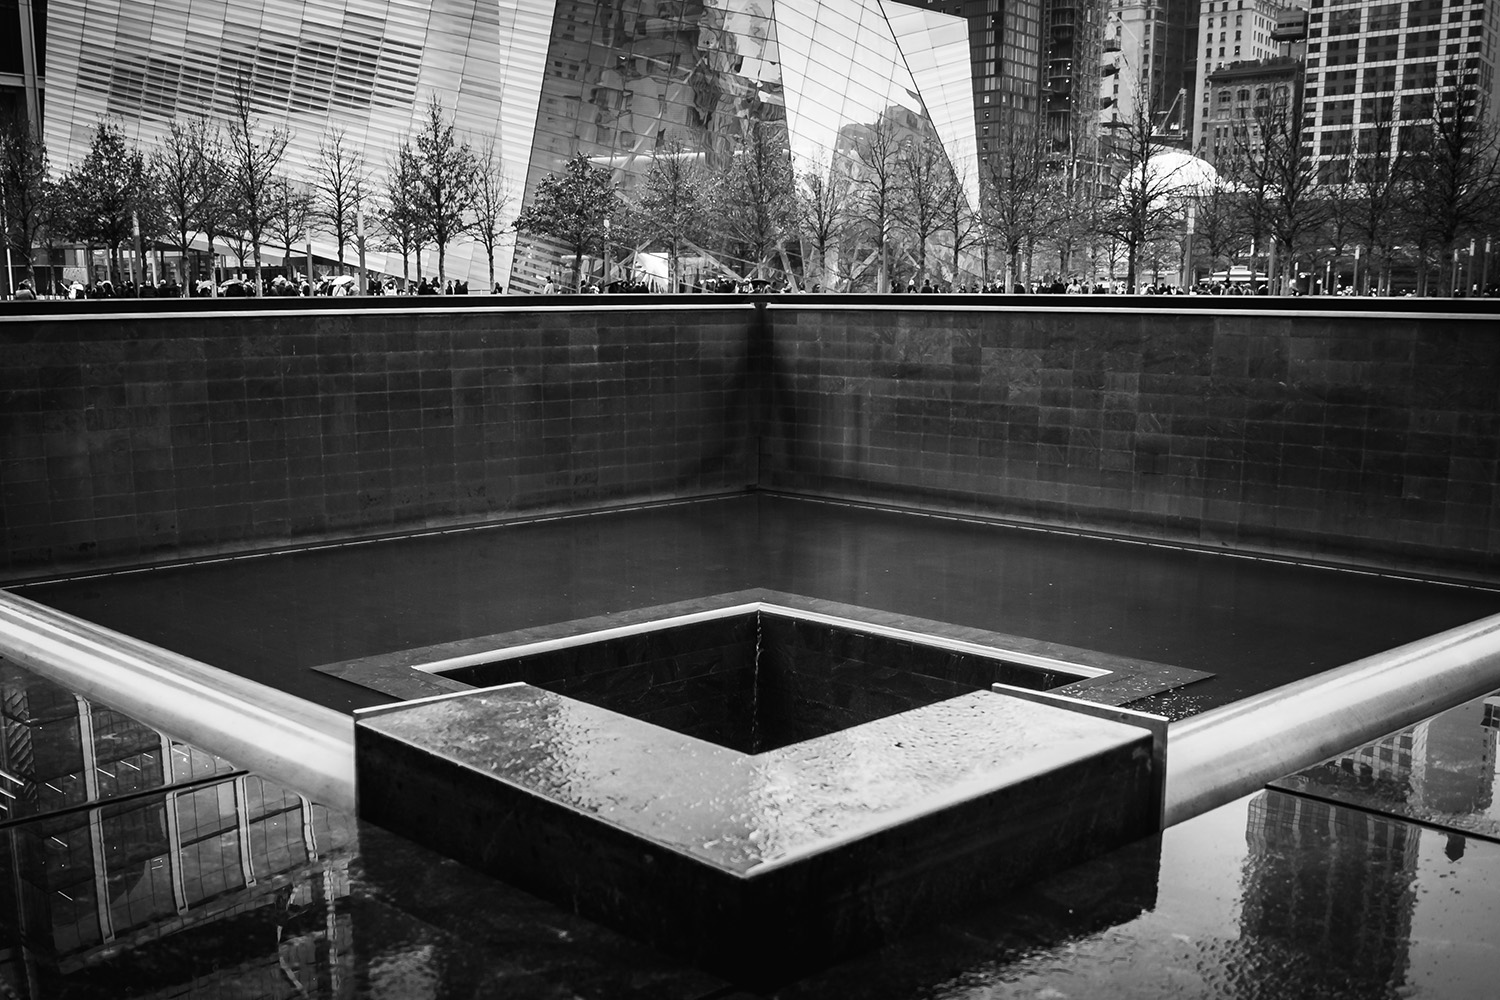 B&W Ground Zero